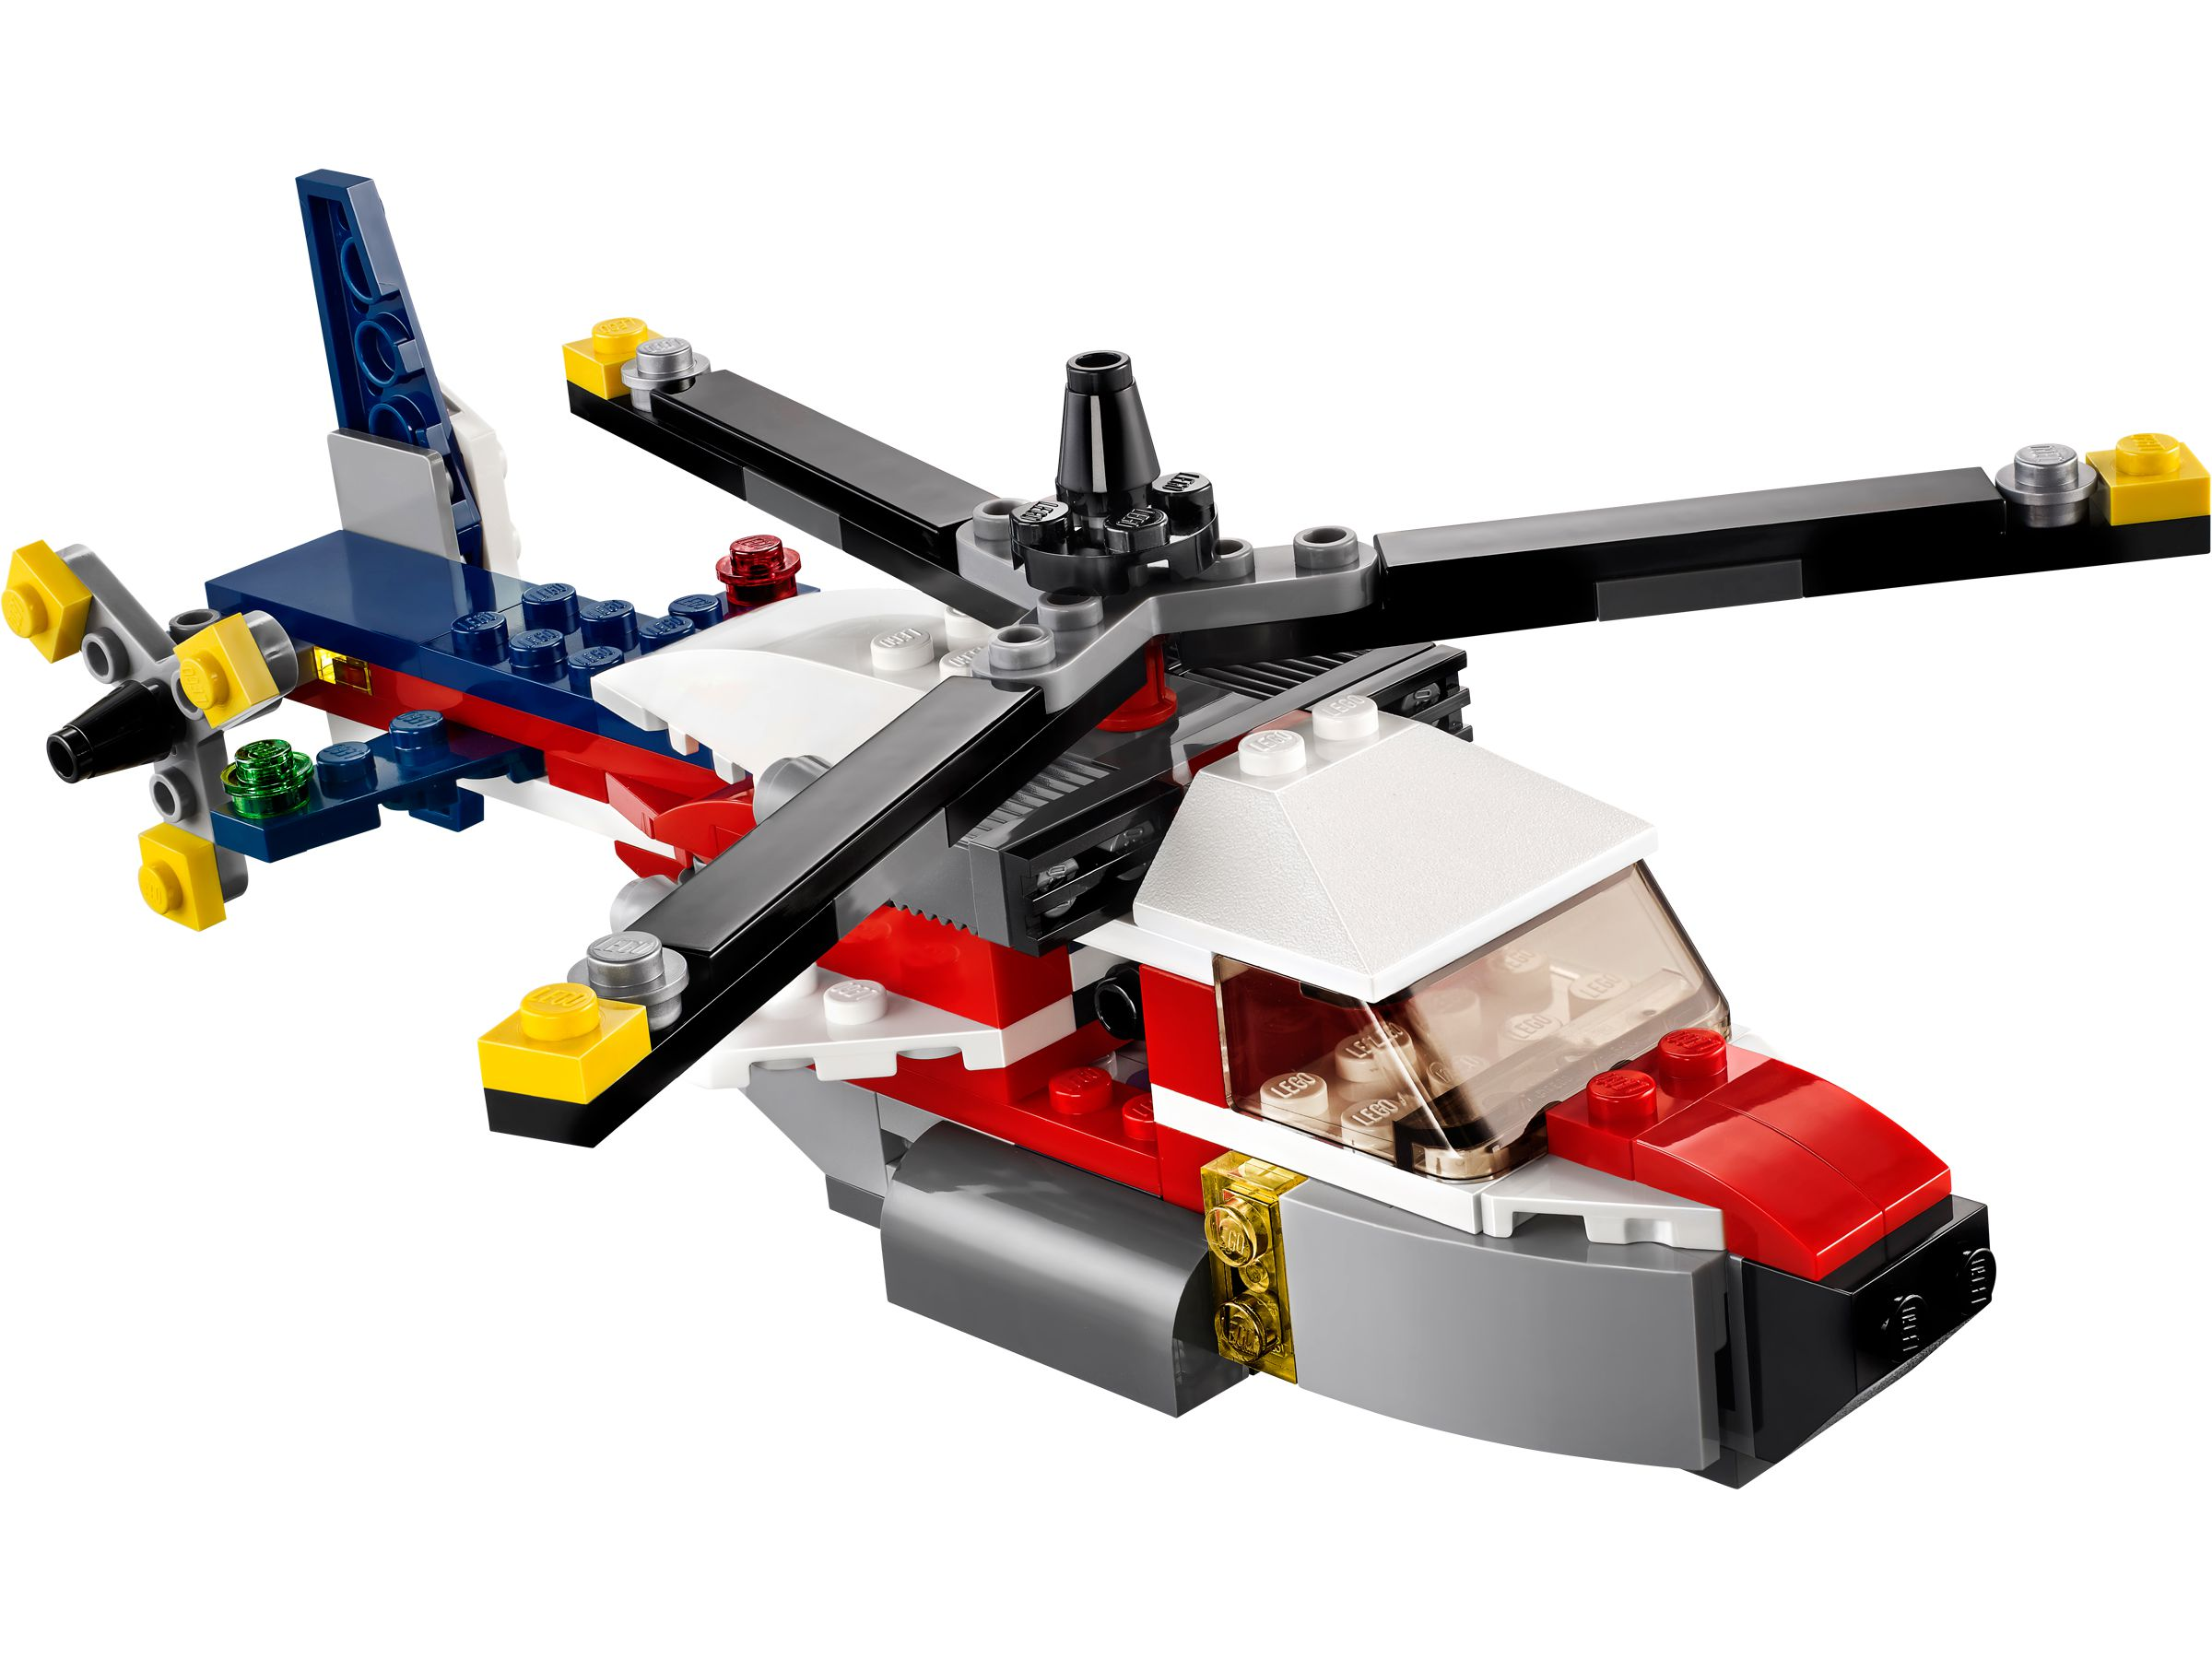 lego 31020 flugzeug abenteuer creator 2014 twinblade adventures brickmerge. Black Bedroom Furniture Sets. Home Design Ideas